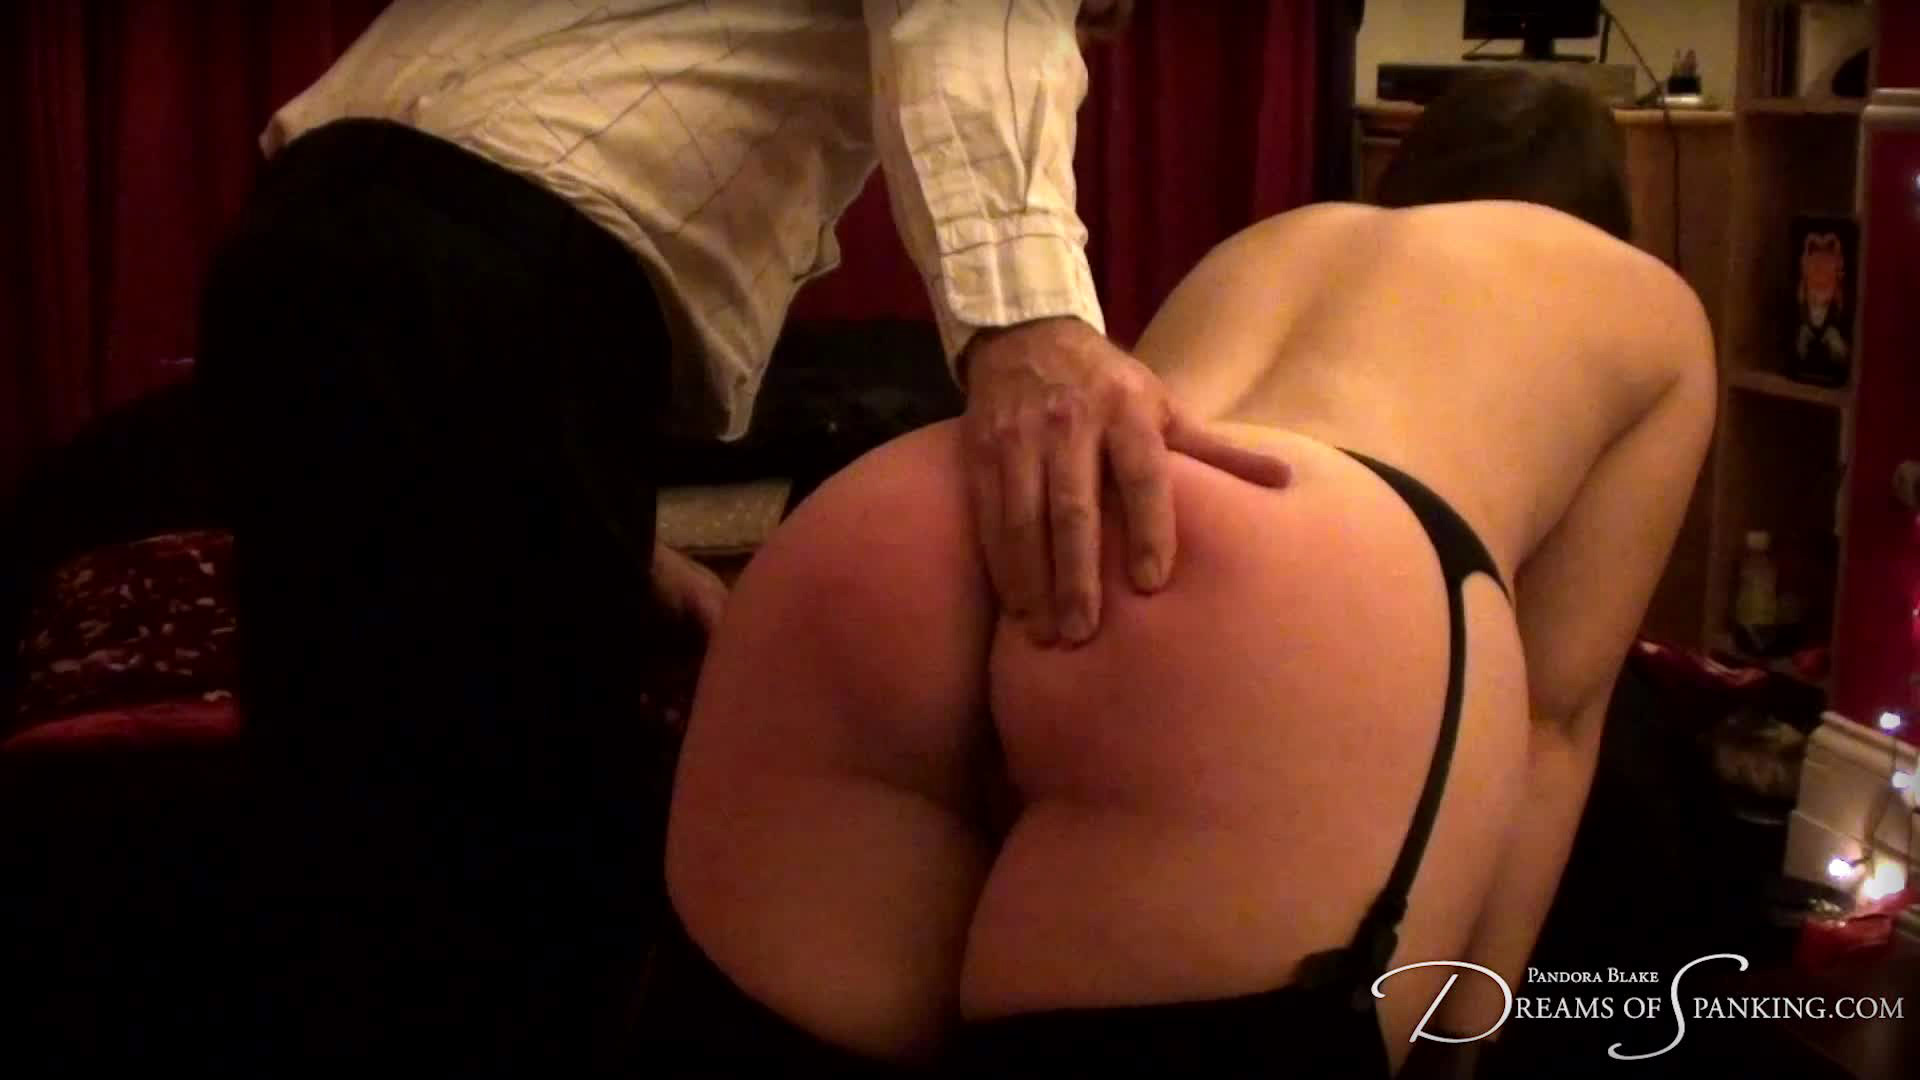 Pandora Blake receives a hard strapping and caning at Dreams of Spanking